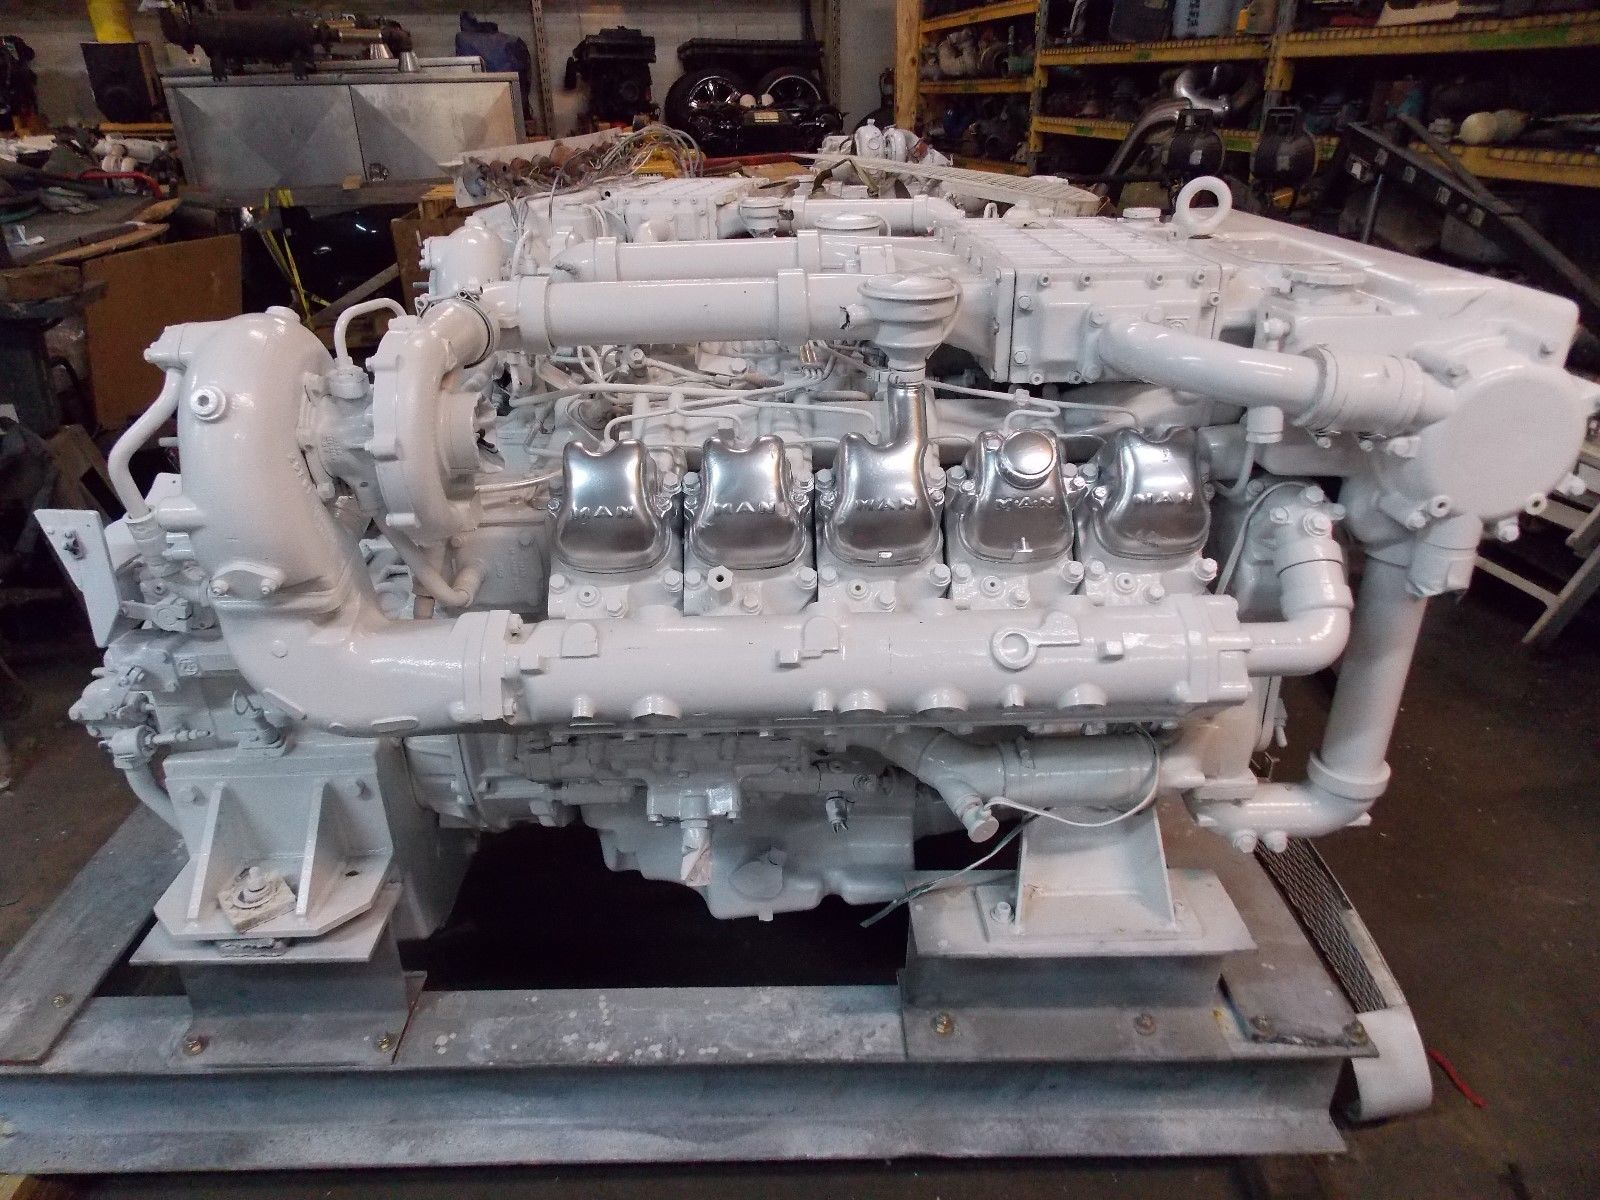 MAN D2840LXE V10 2840 Used Marine Engine